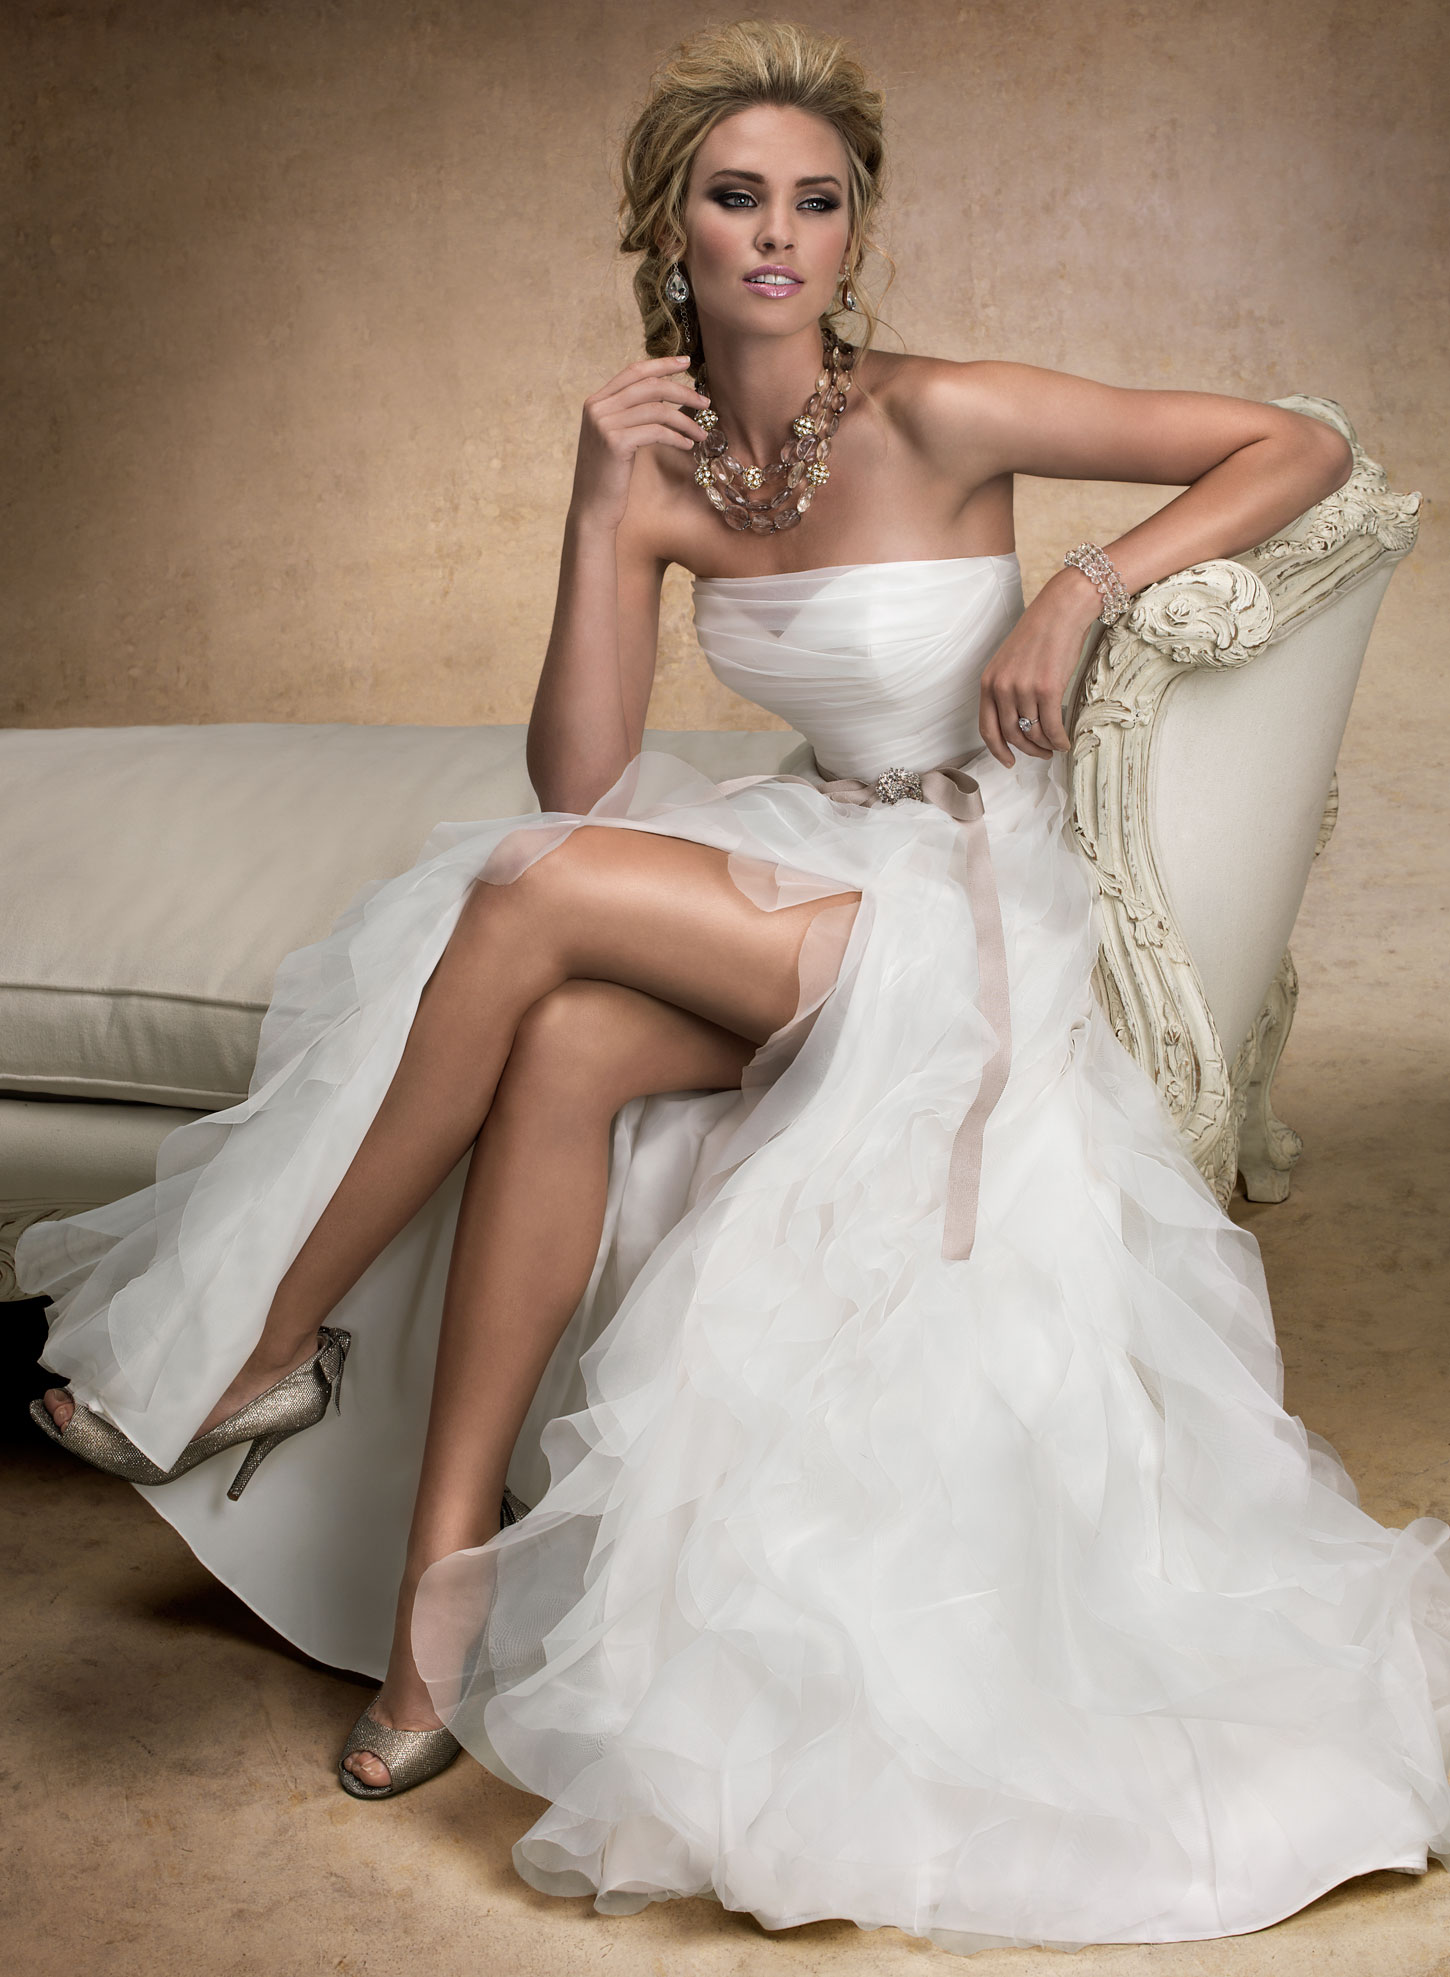 Wedding Gowns For Second Marriage 005 - Wedding Gowns For Second Marriage